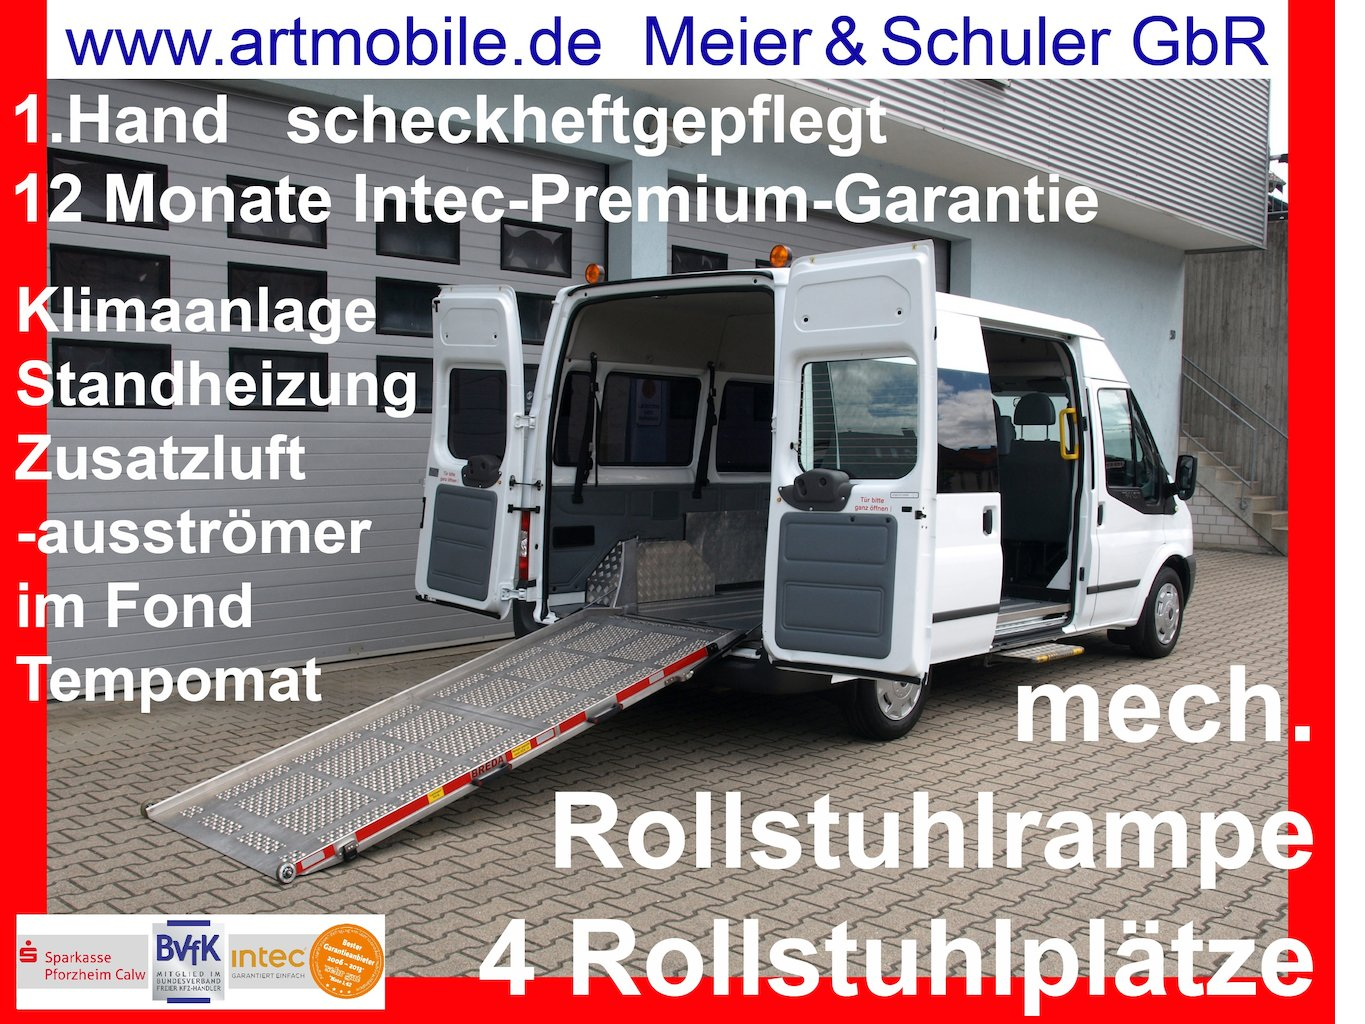 gebrauchte 2012 ford transit zum verkauf in mannheim cargurus. Black Bedroom Furniture Sets. Home Design Ideas